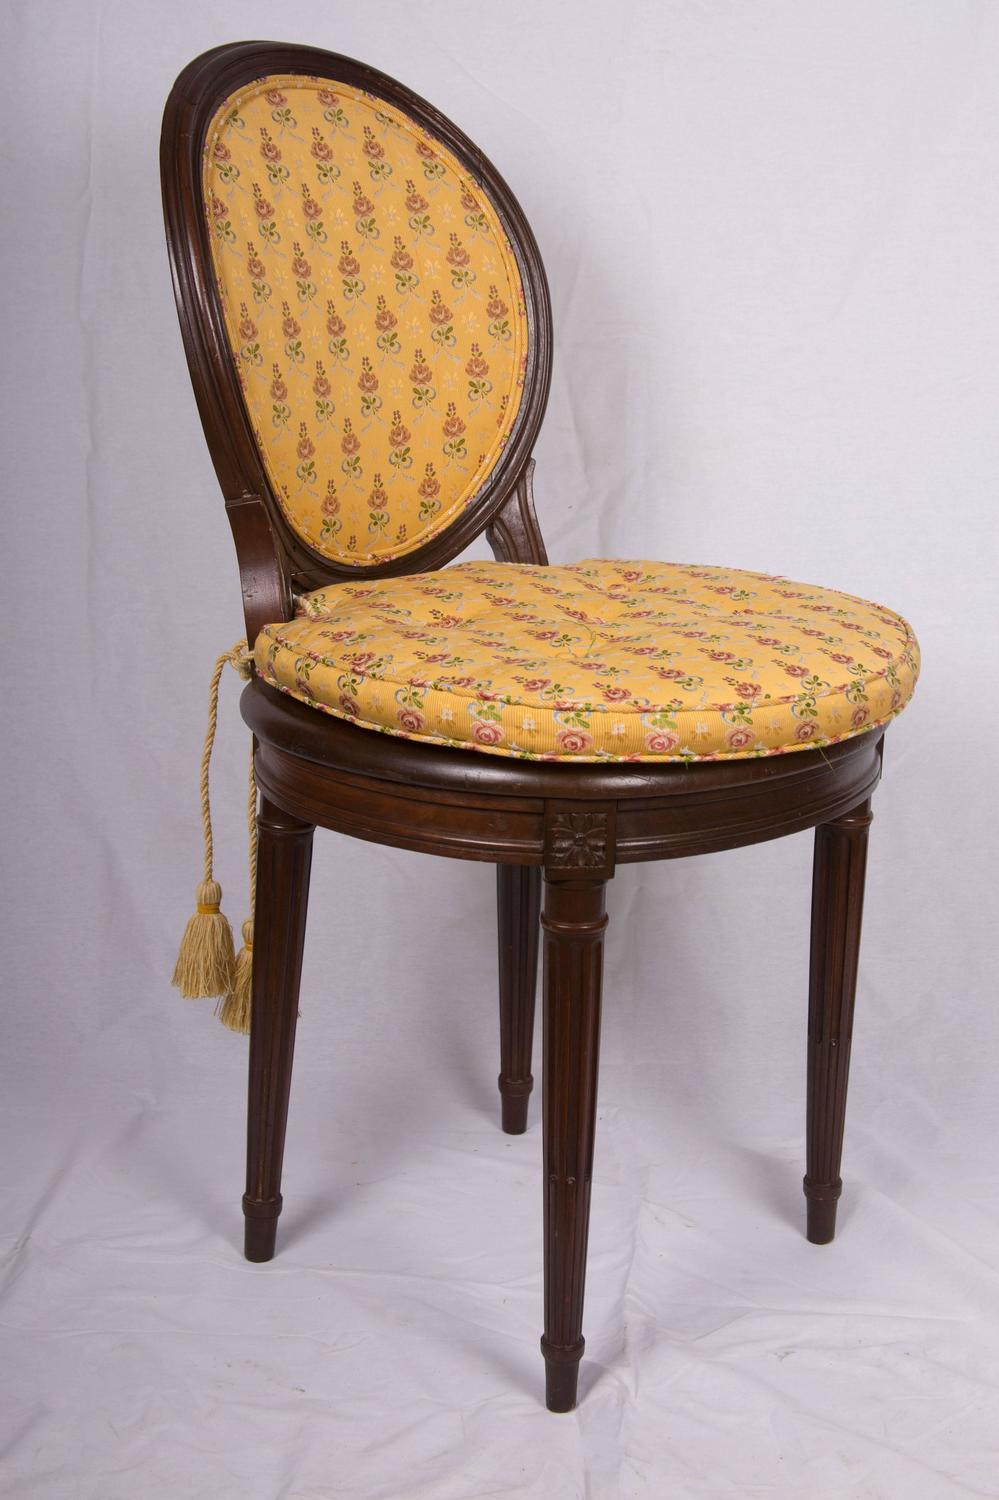 19th Century Walnut Caned Musician 39 S Chairs For Sale At 1stdibs